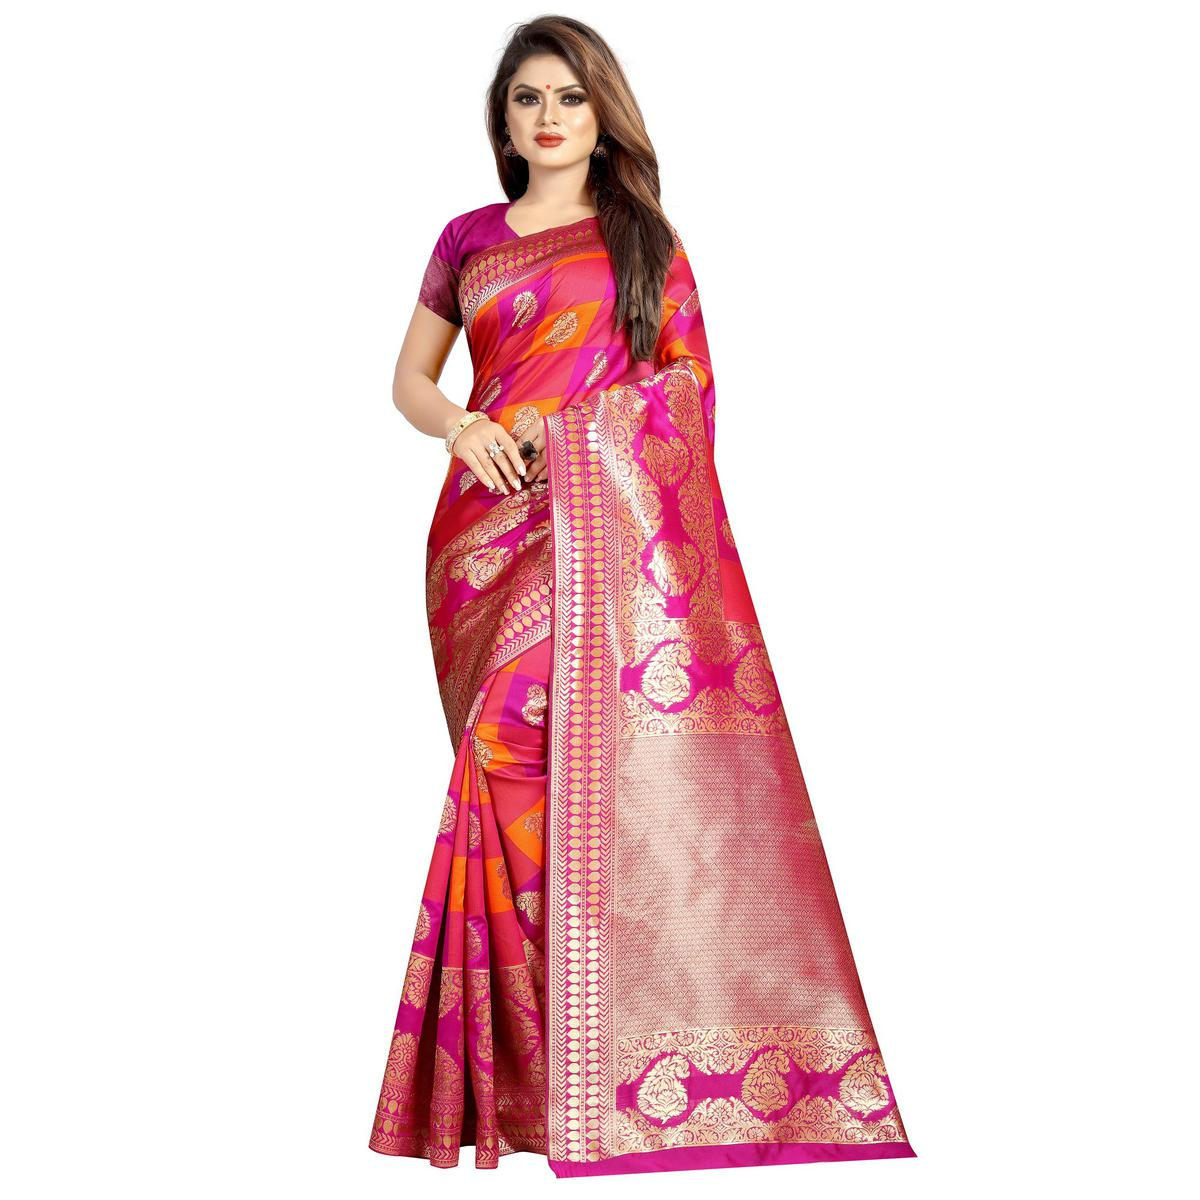 Magnetic Pink Colored Festive Wear Woven Art Silk With Jacquard Border Saree